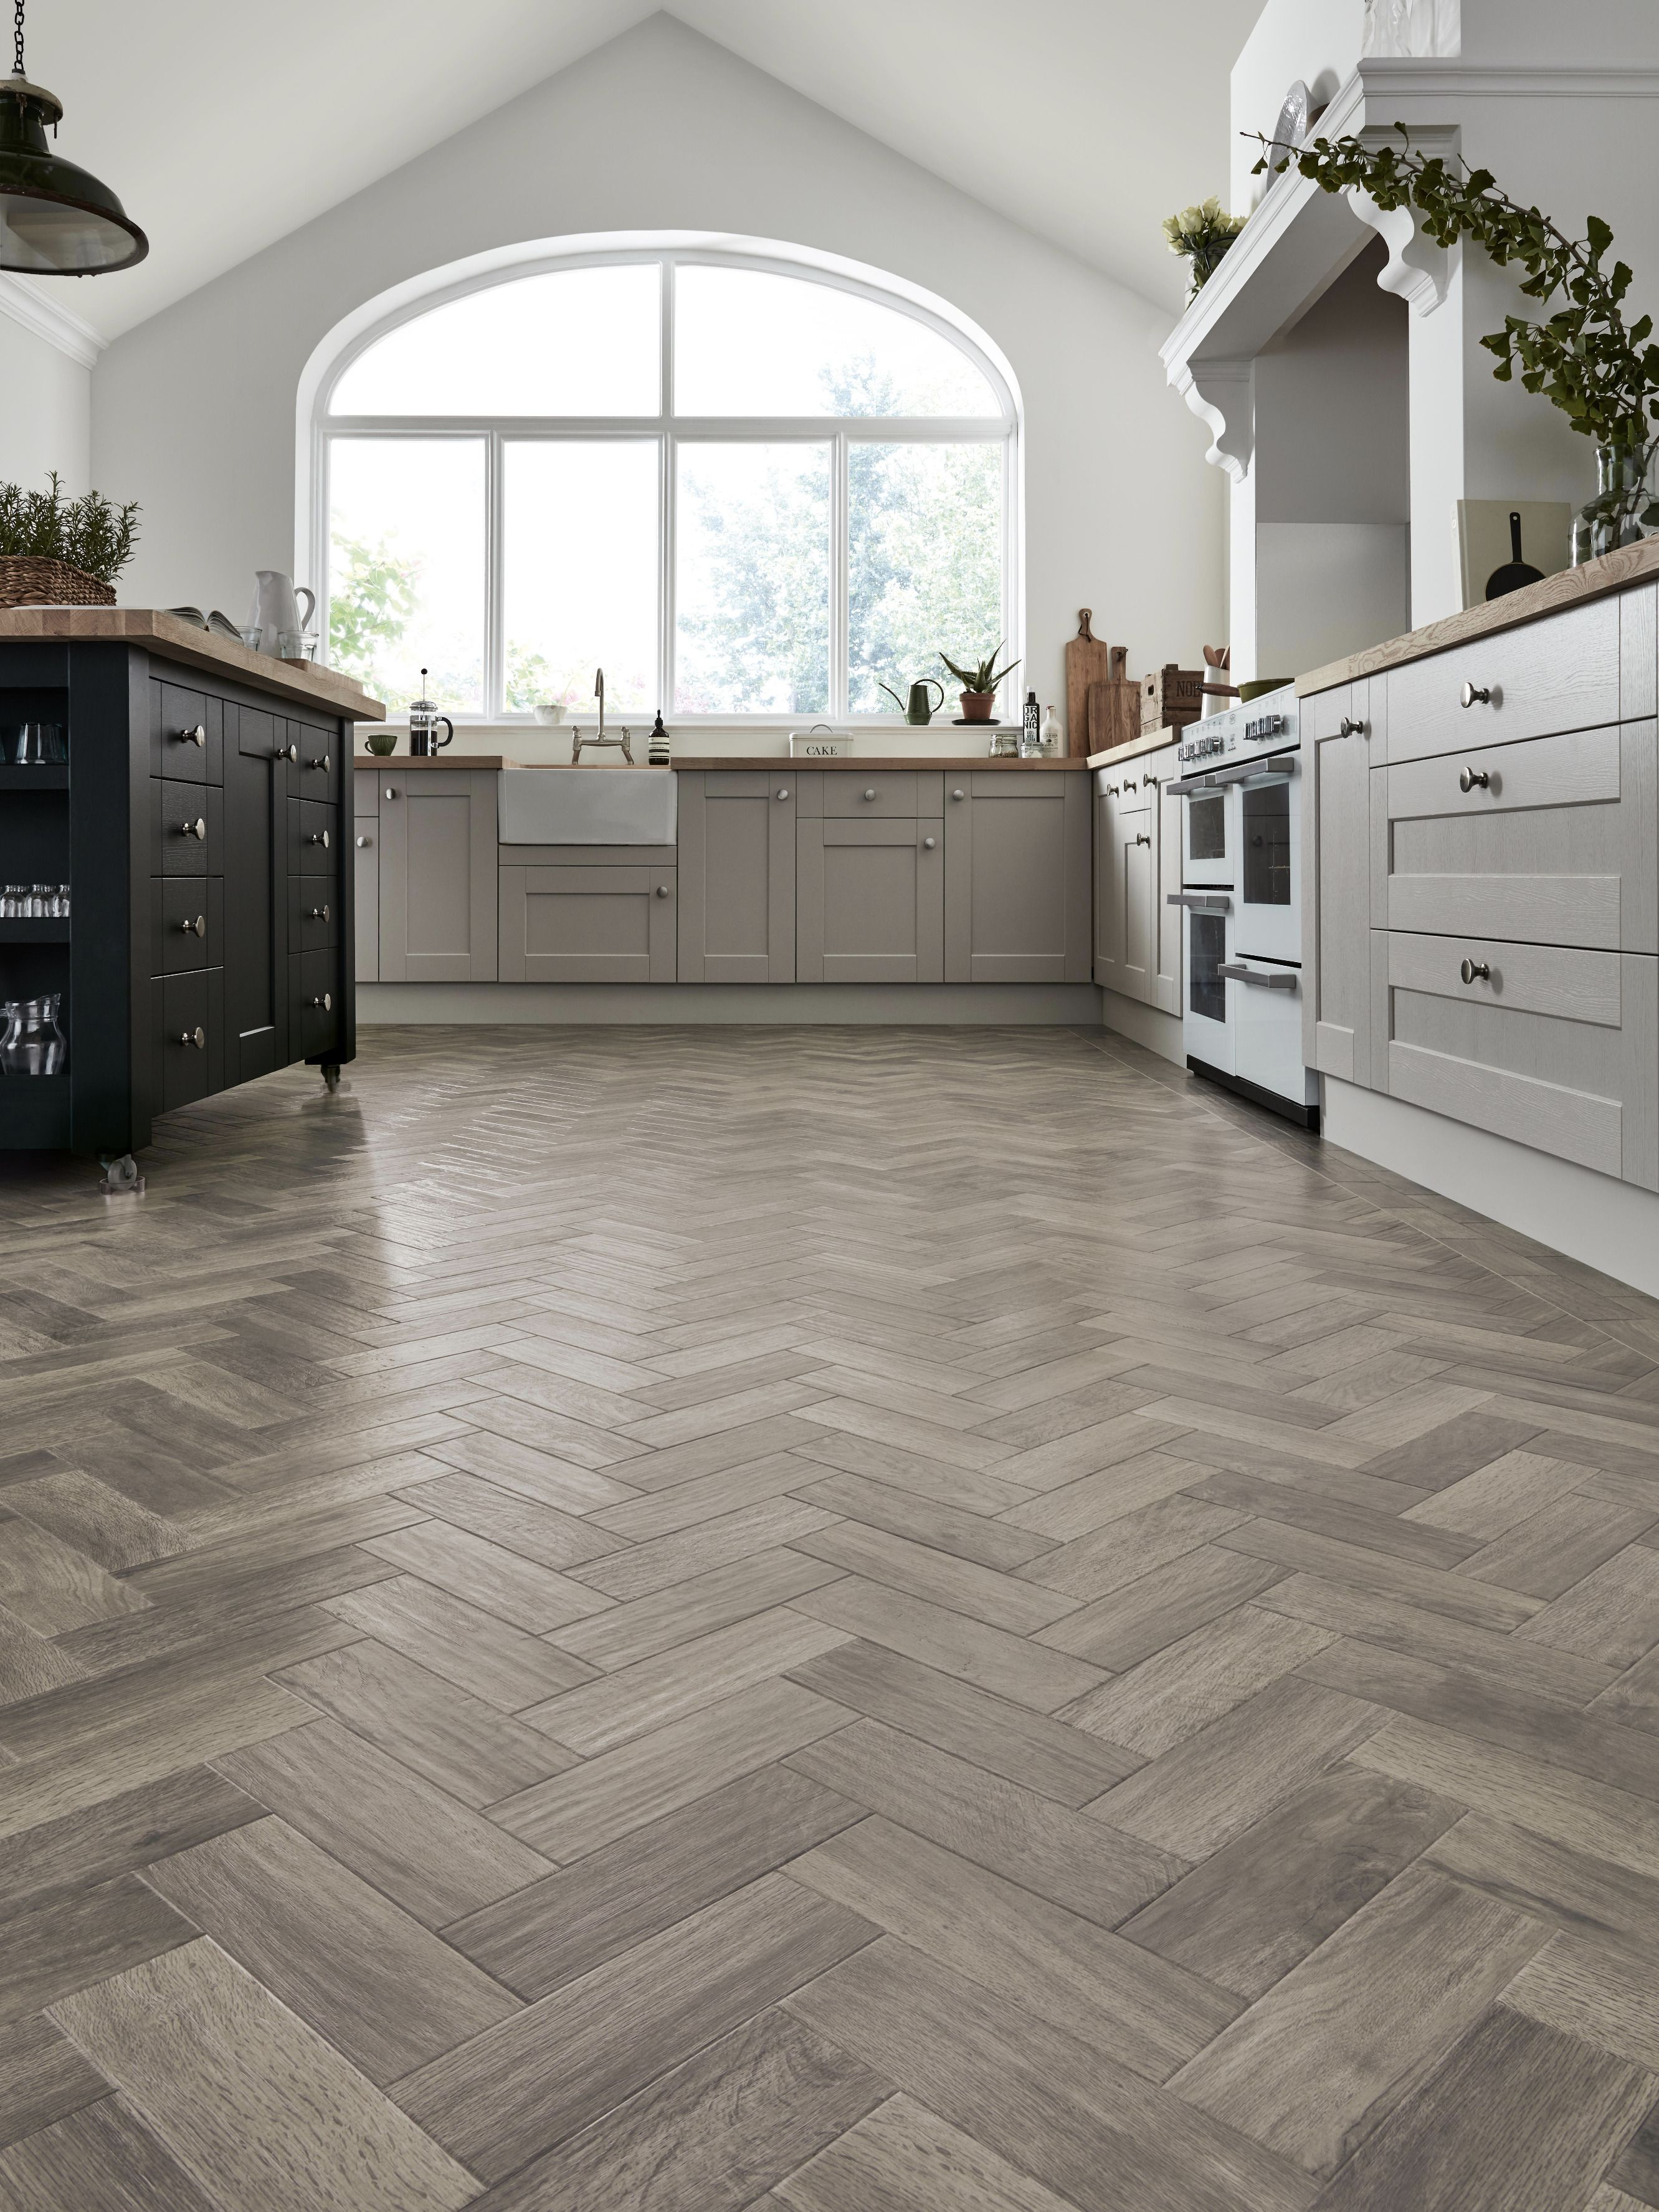 Michael John Flooring Are Leicestershire S Premier Flooring